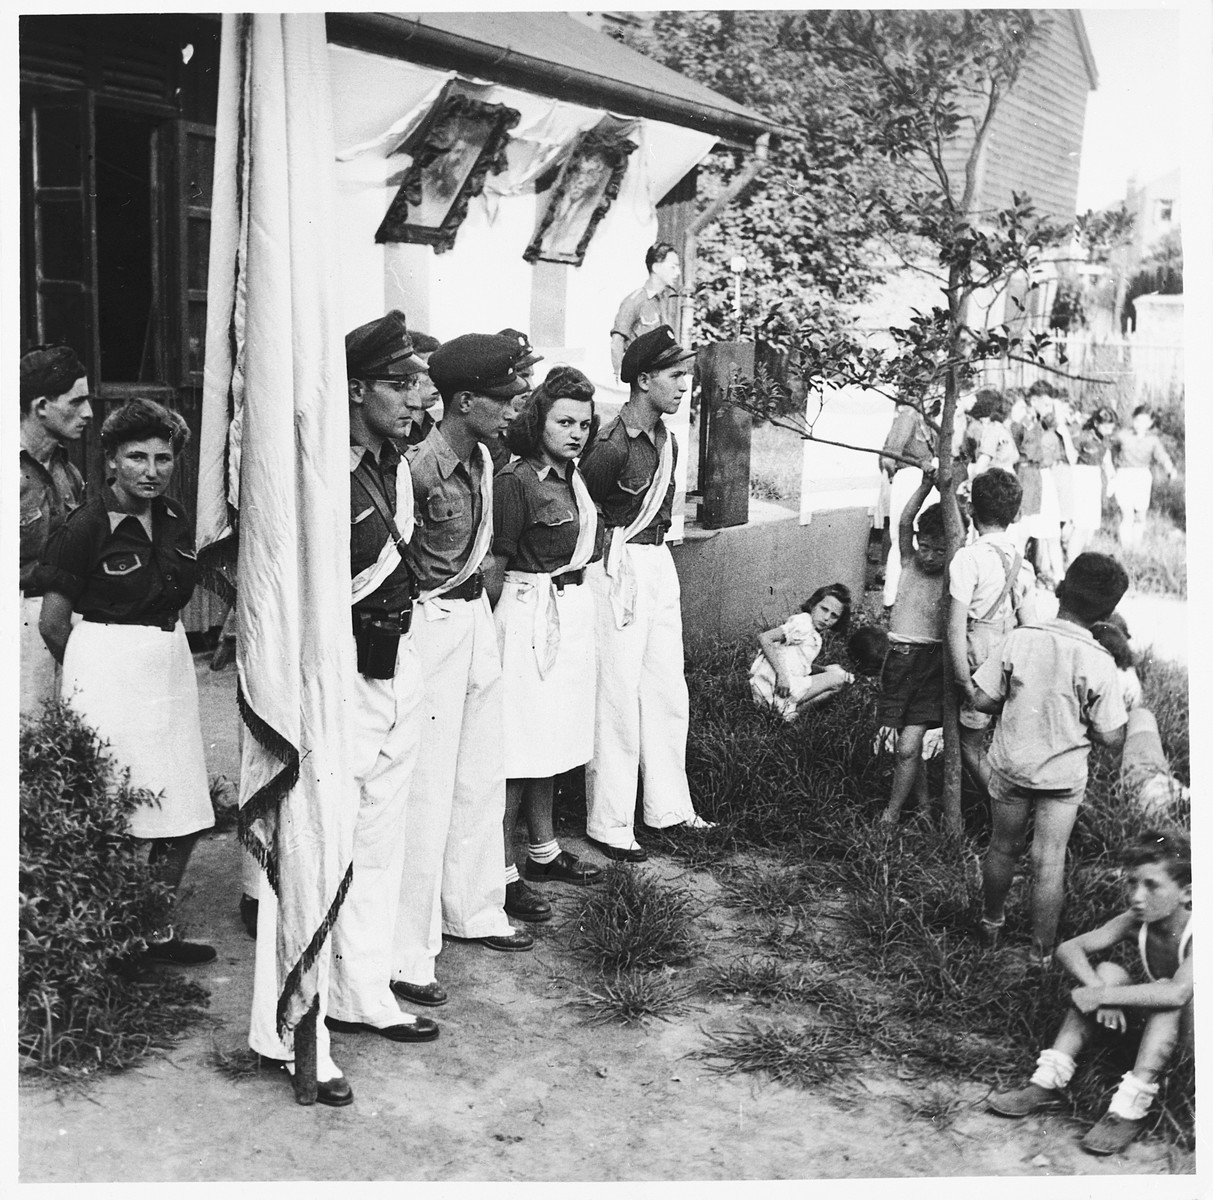 Members of the Betar Zionist movement stand at attention in an outdoor meeting in Shanghai.